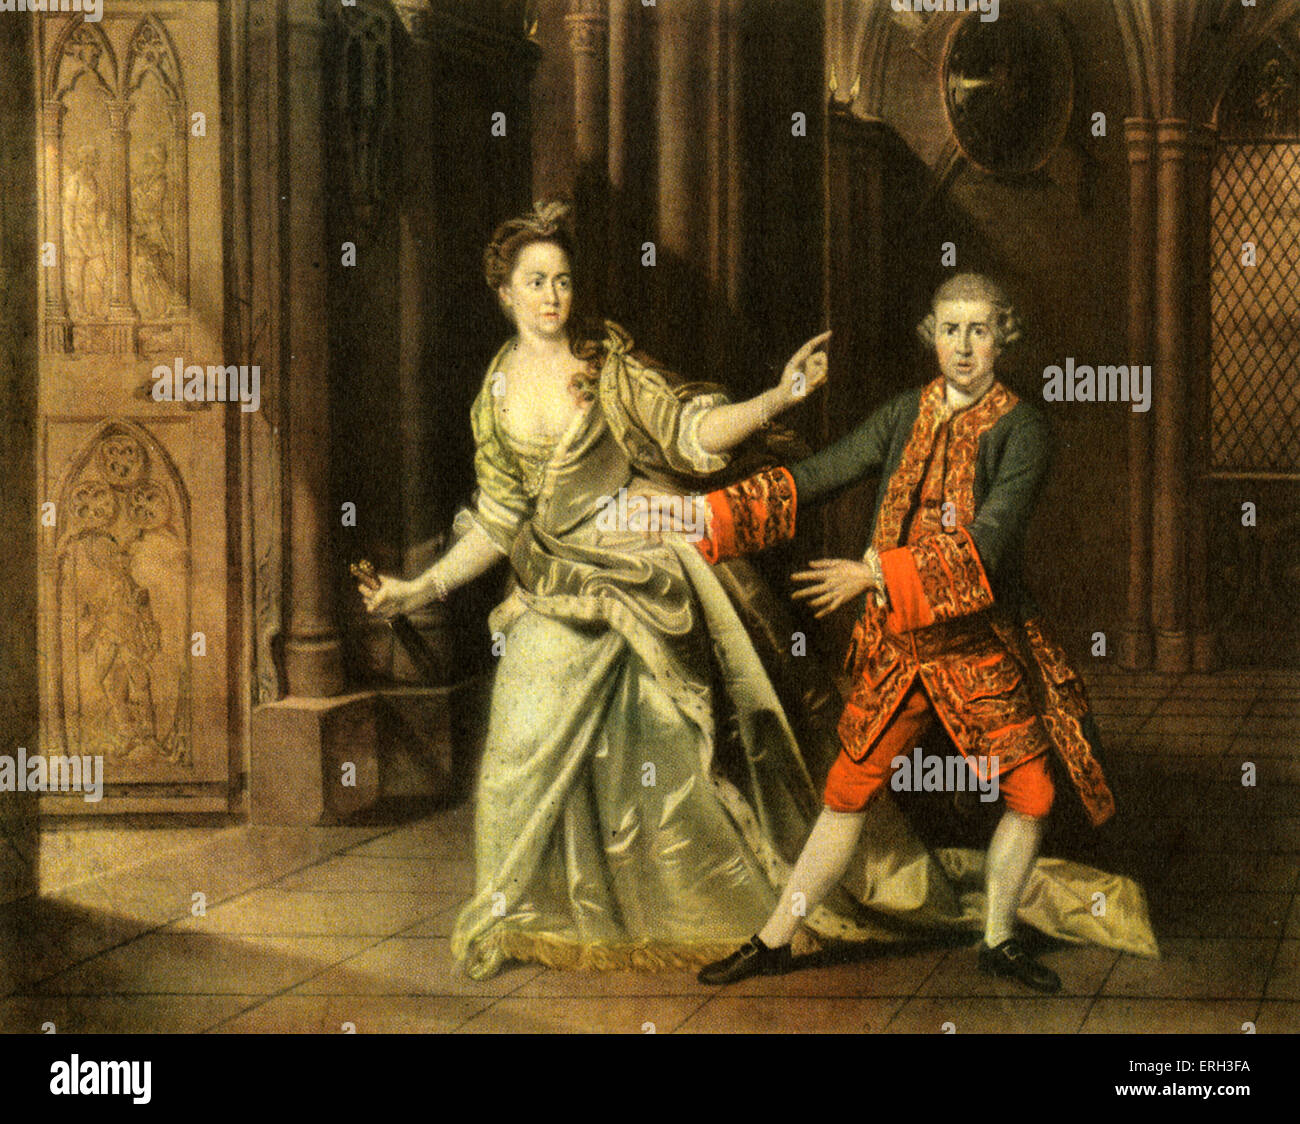 an analysis of character lady macbeth in the play macbeth At the beginning of the play, macbeth is celebrated as a brave how easily he is manipulated by lady macbeth com/macbeth-character-analysis.